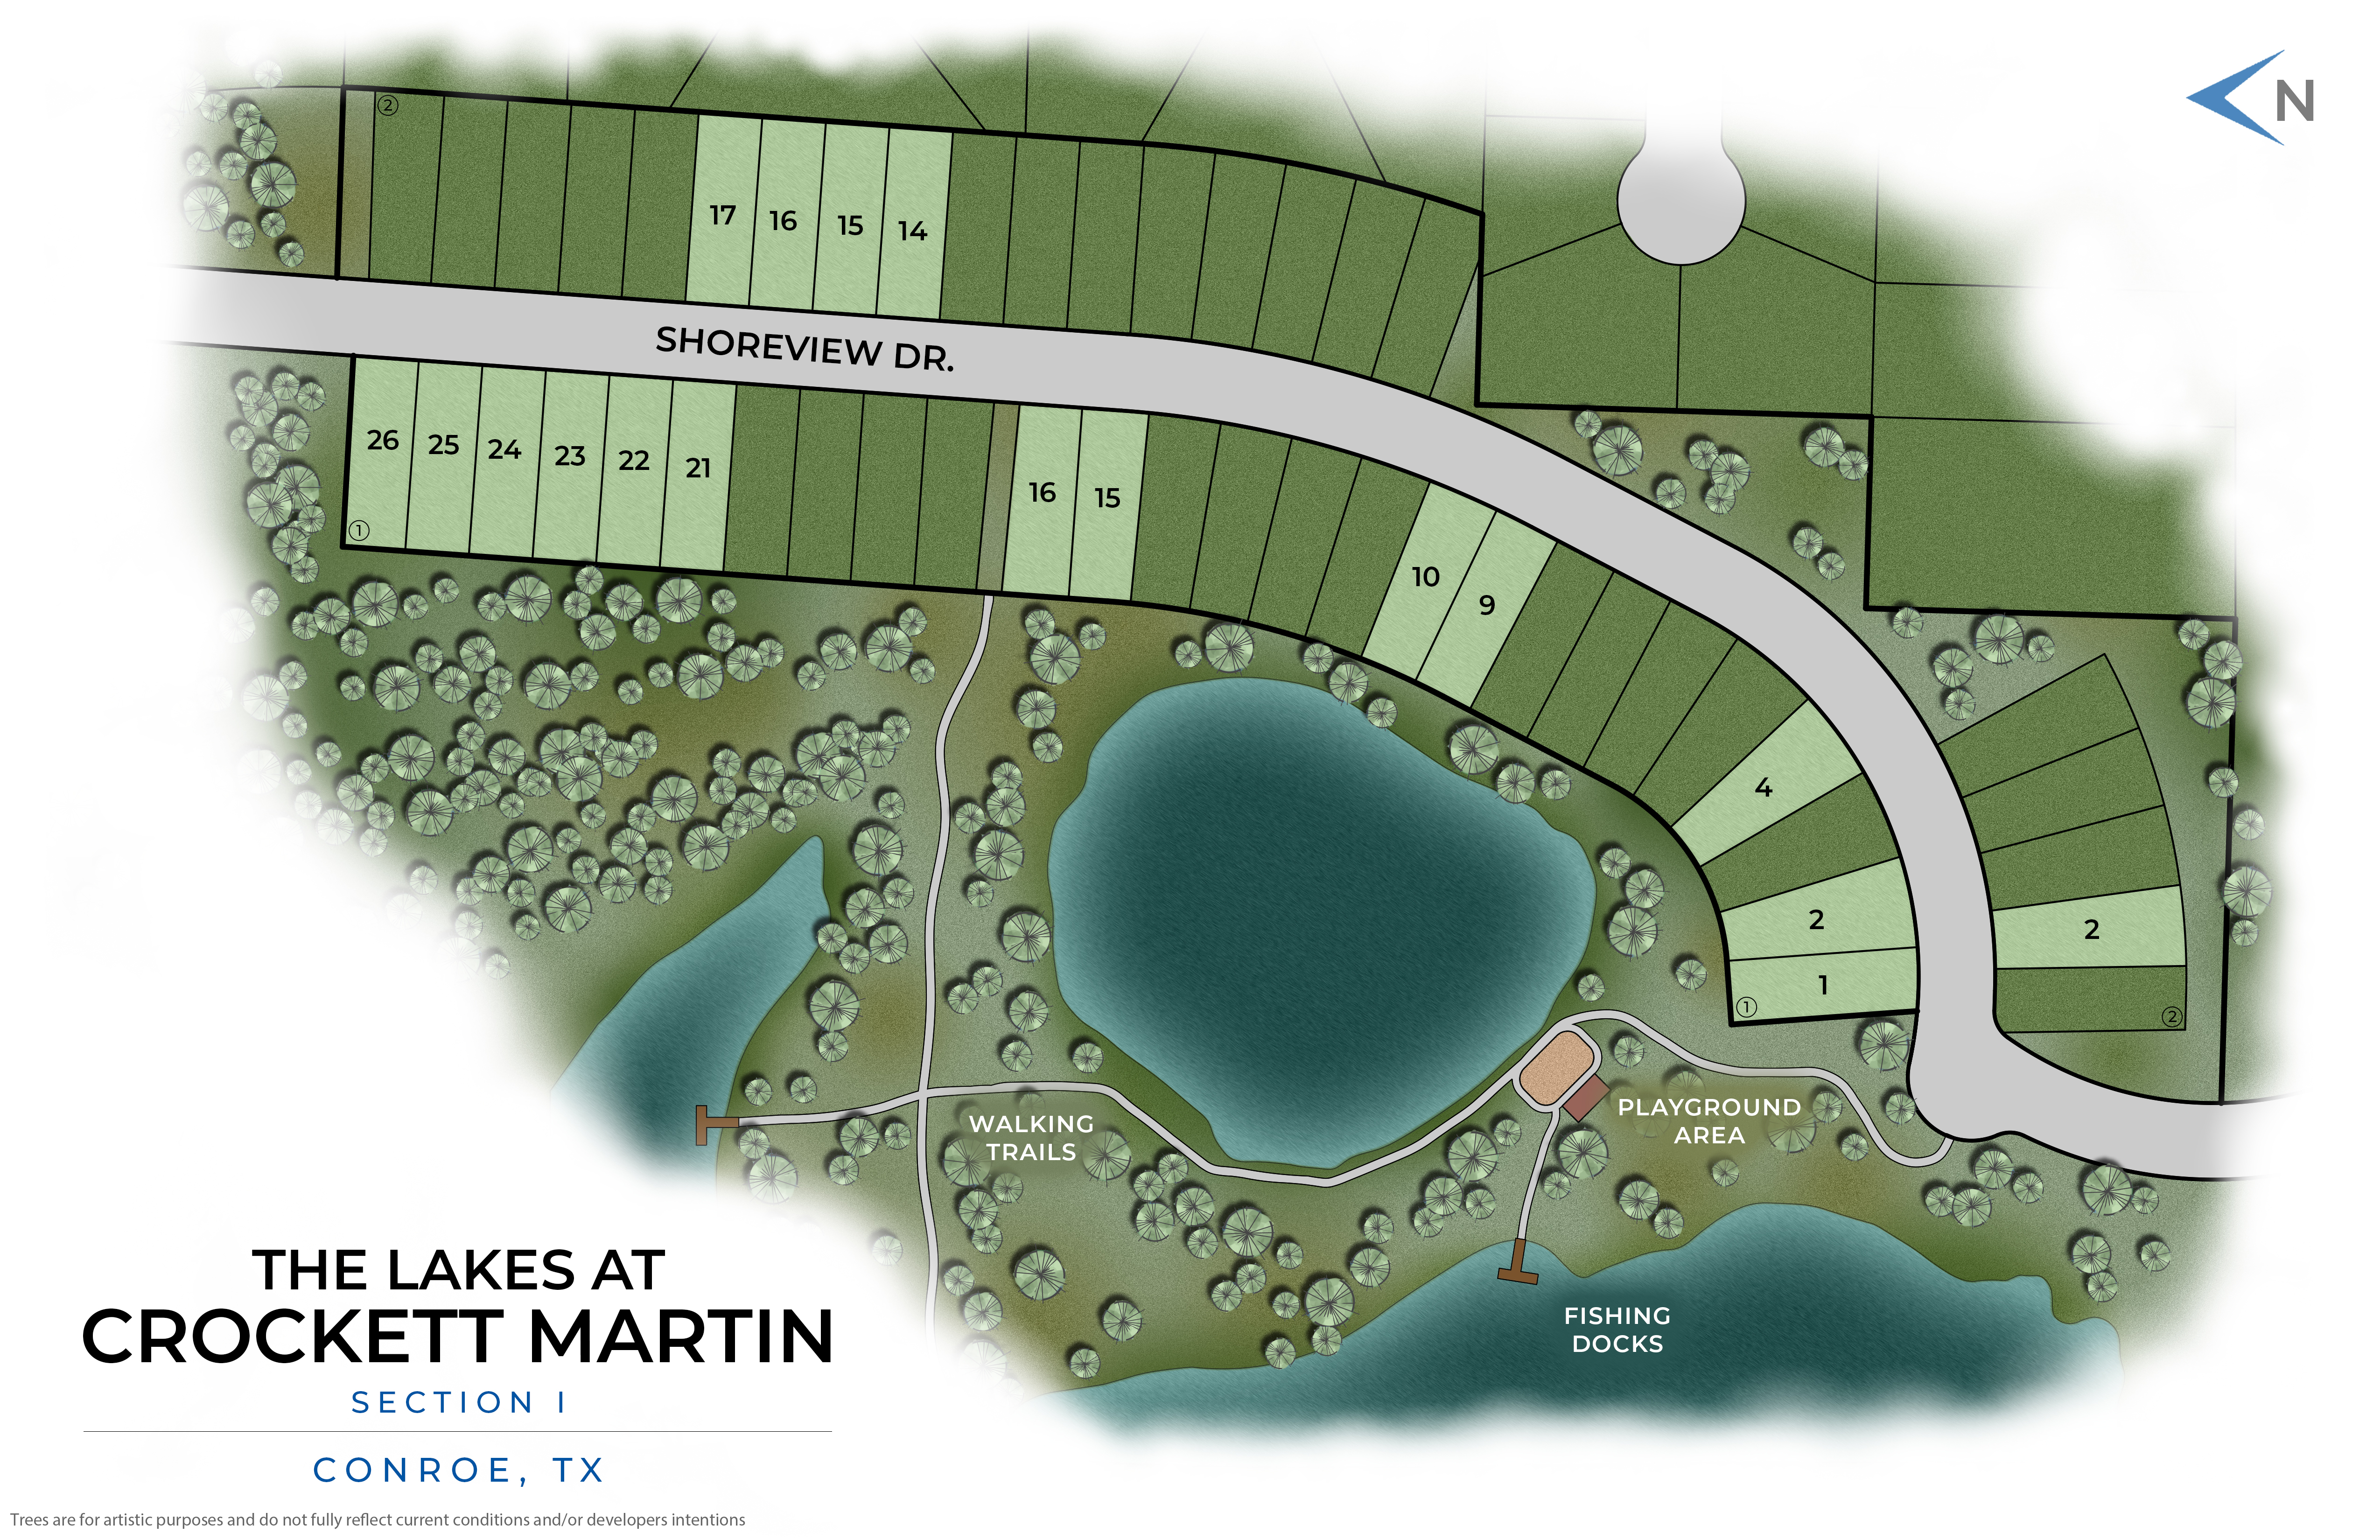 Conroe, TX The Lakes at Crockett Martin New Homes from Stylecraft Builders